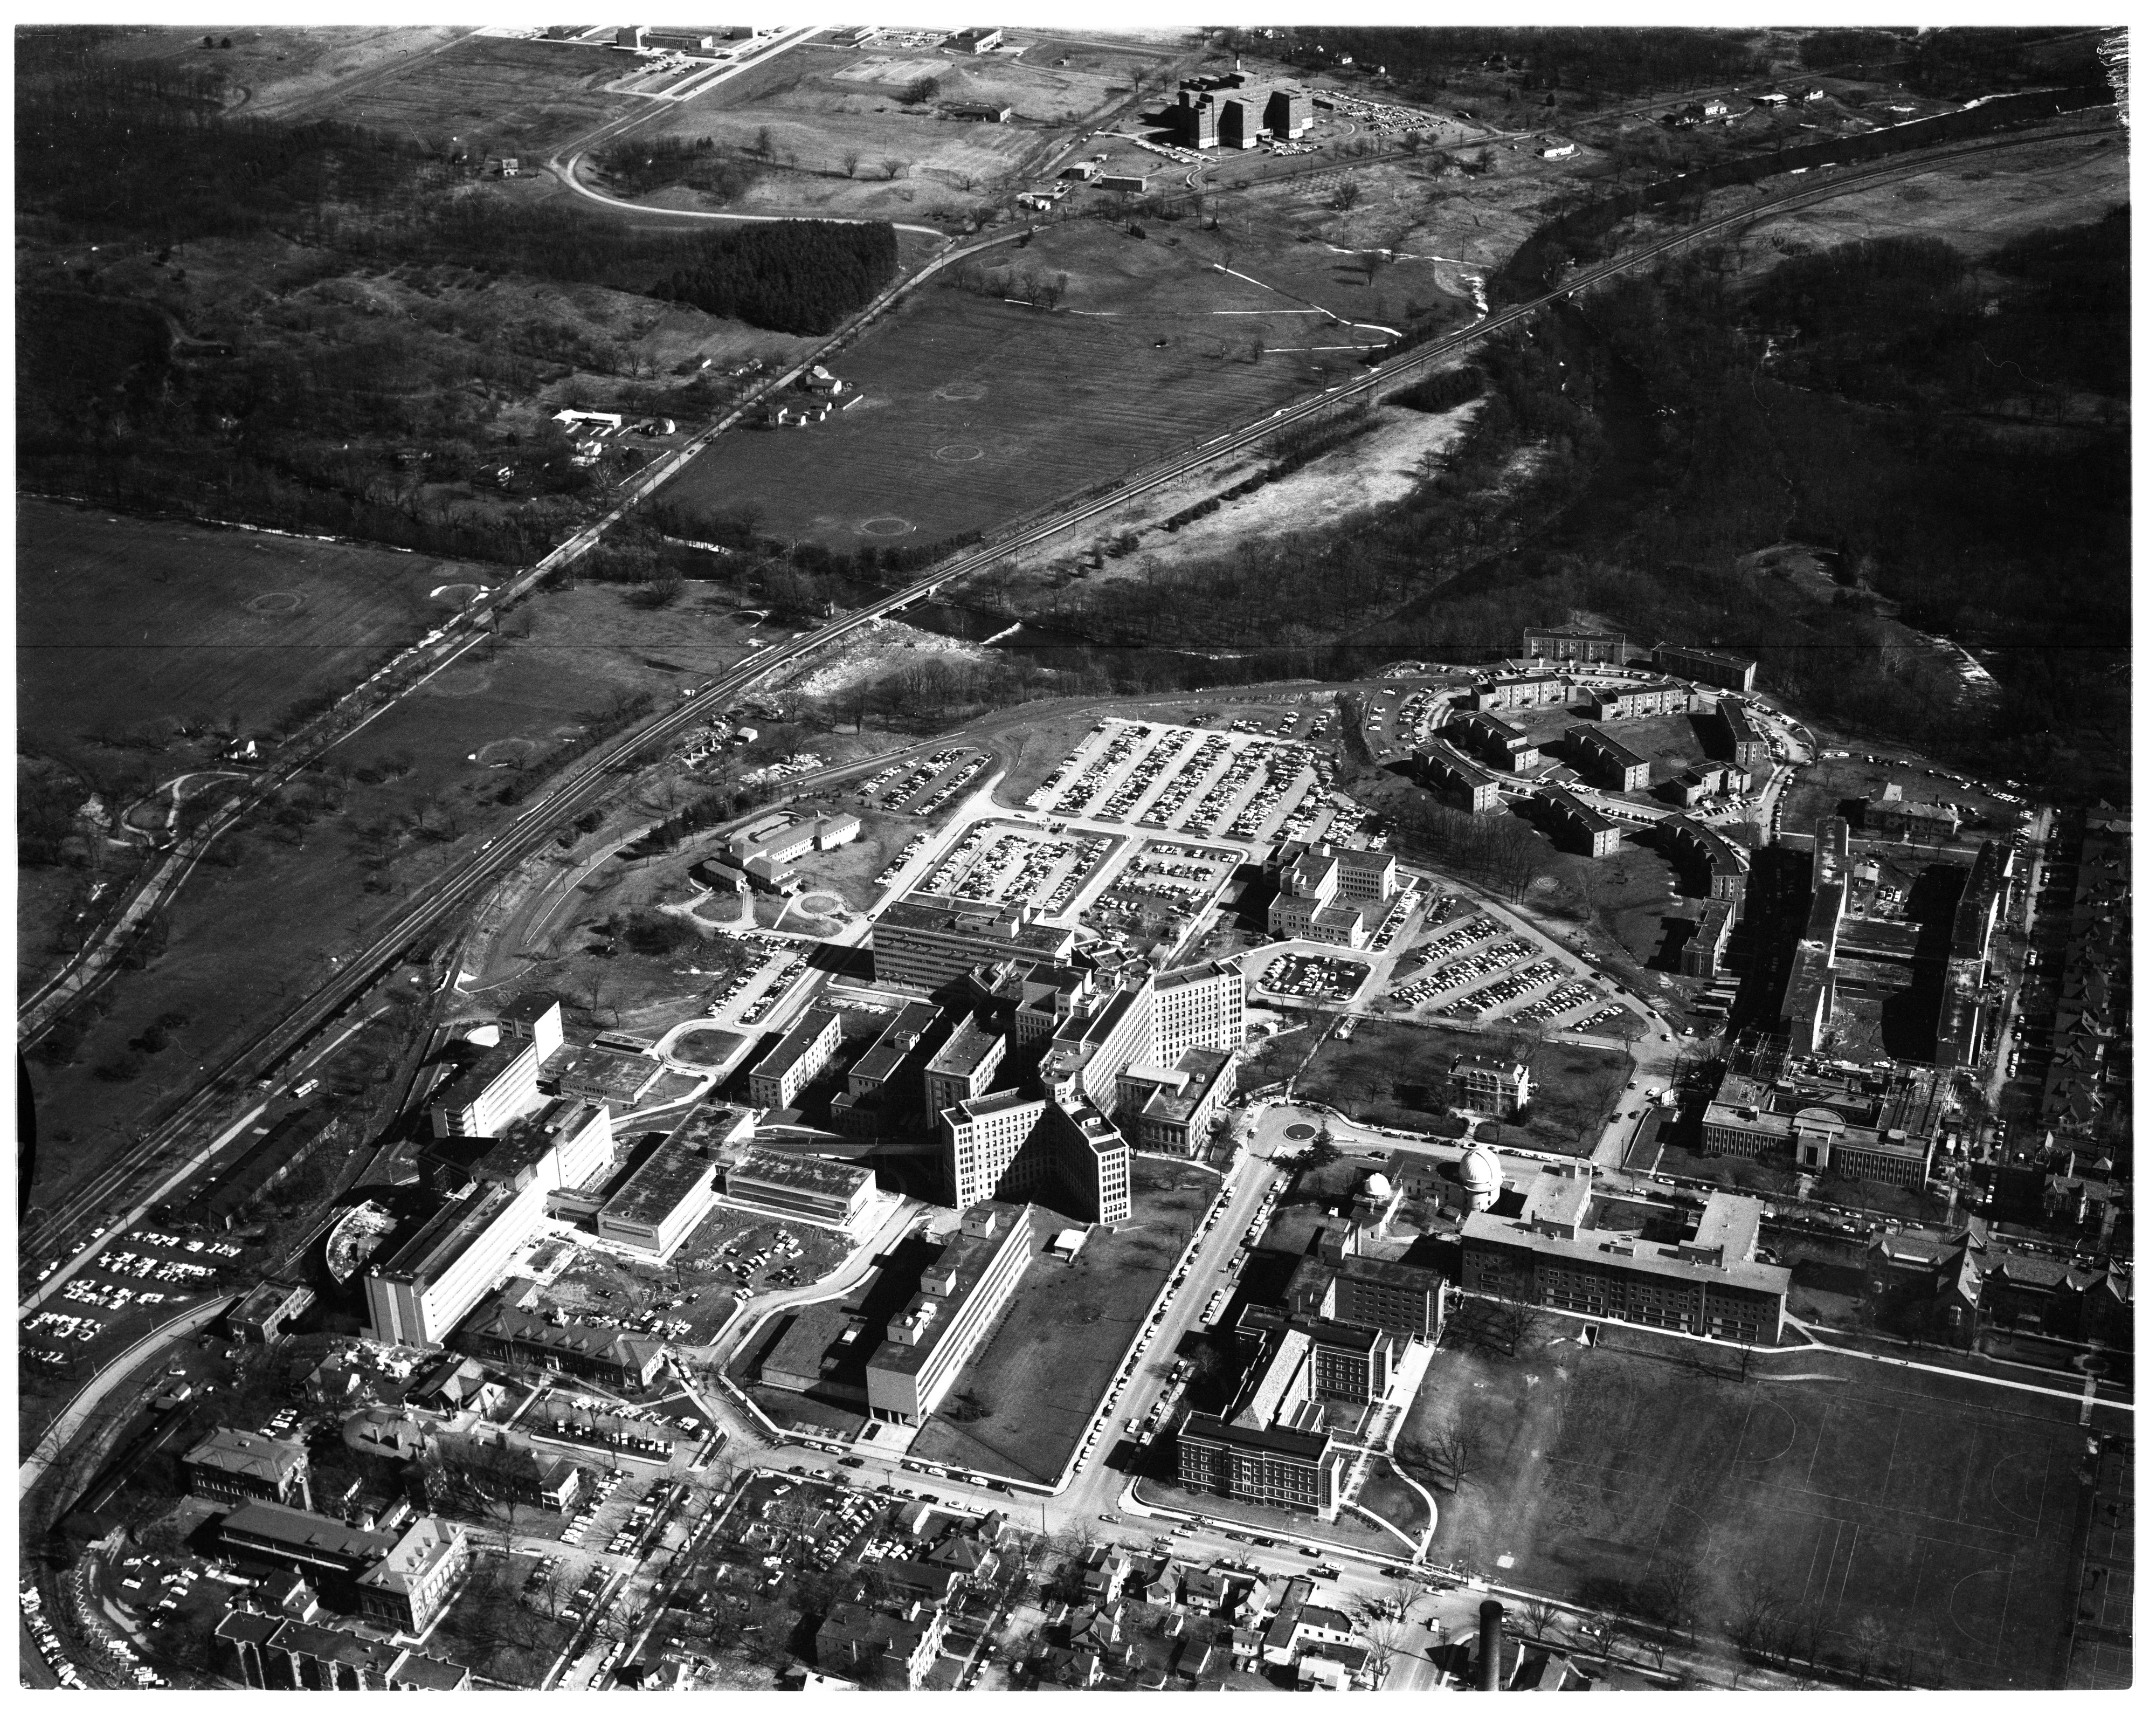 Aerial Photograph of University Hospital Area, February 1958 image